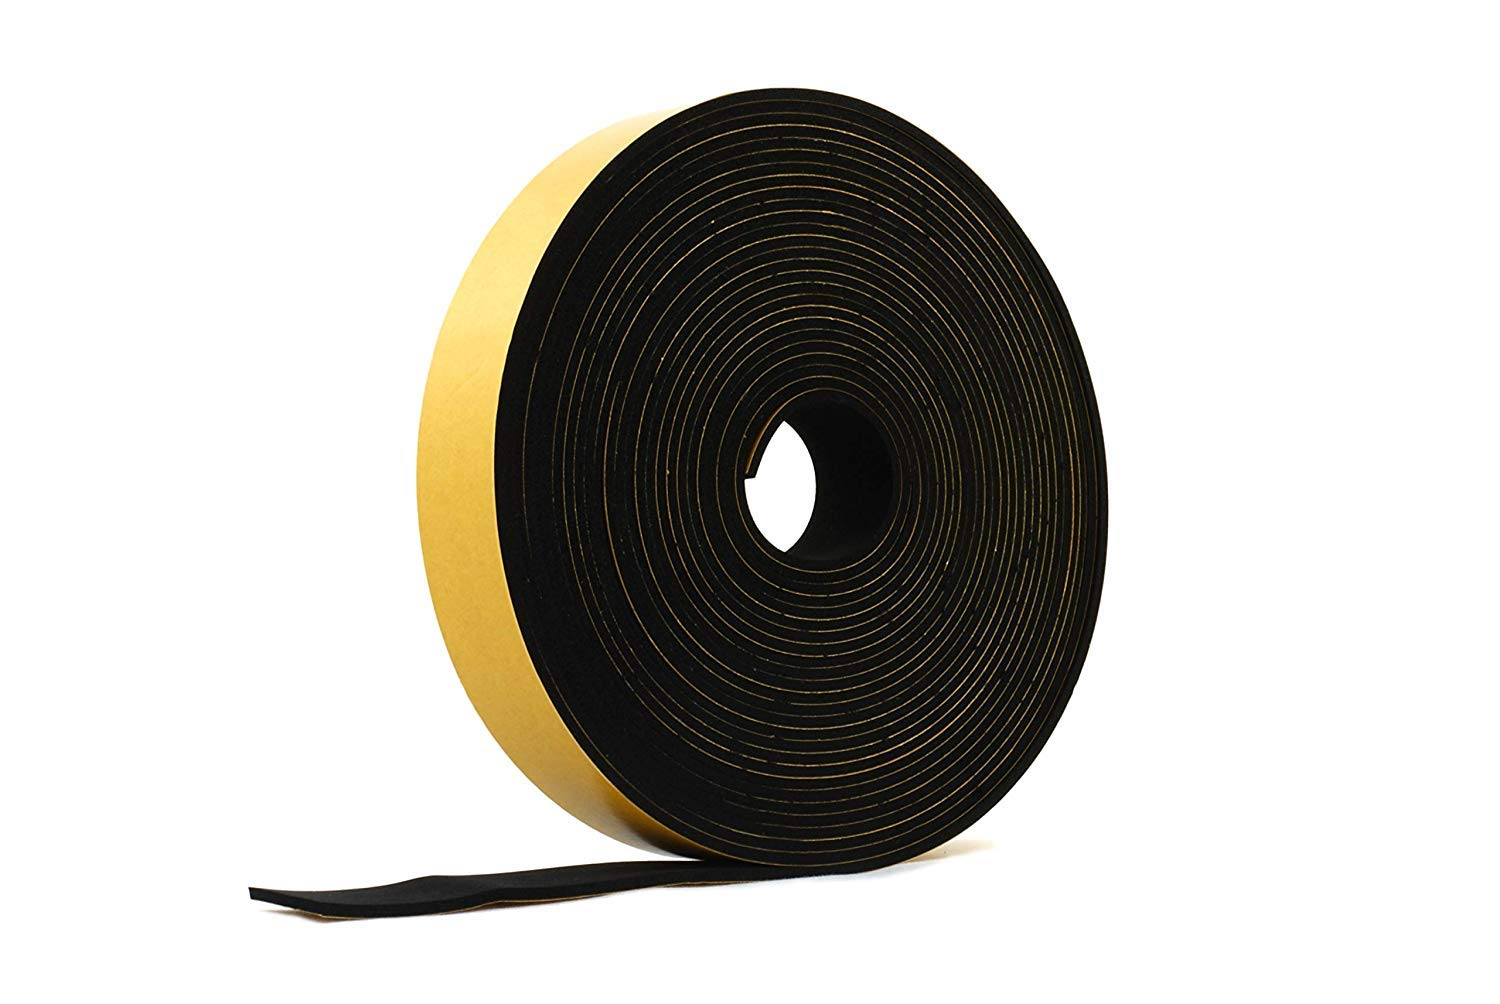 Neoprene Rubber Black Self-adhesive Sponge Strip 10mm wide x 5mm thick x 5m long